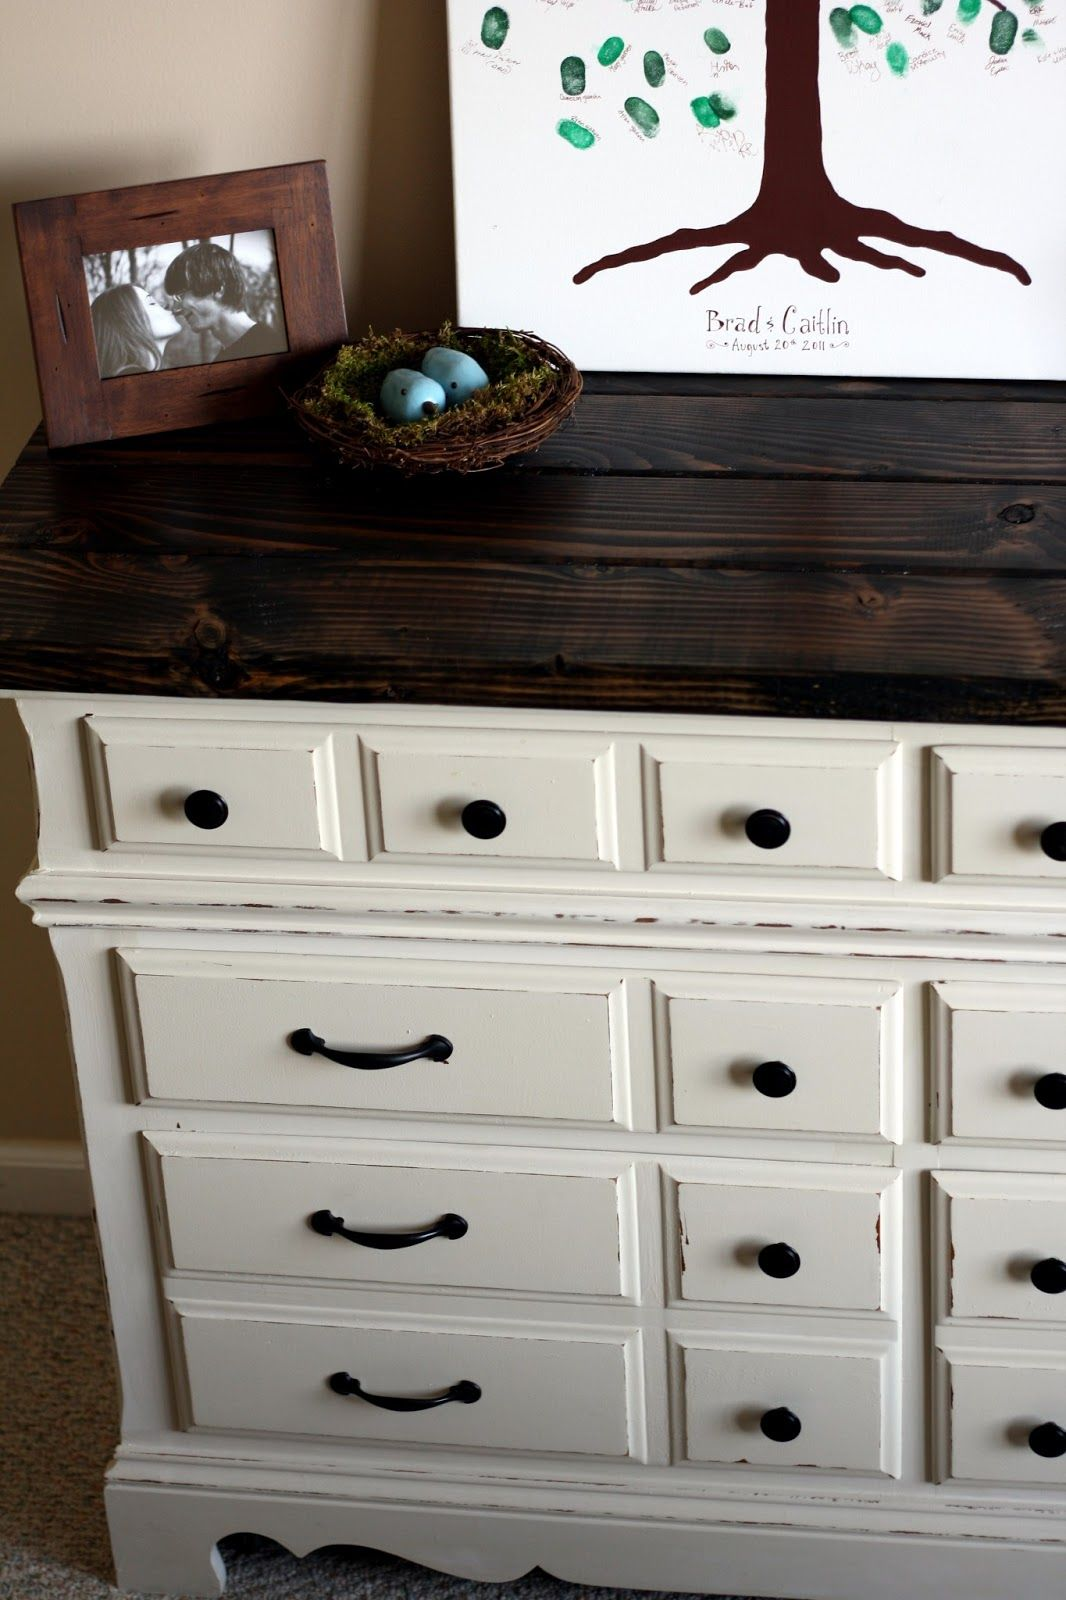 Diy Dresser With Rustic Wooden Top The Semi Frugal Life